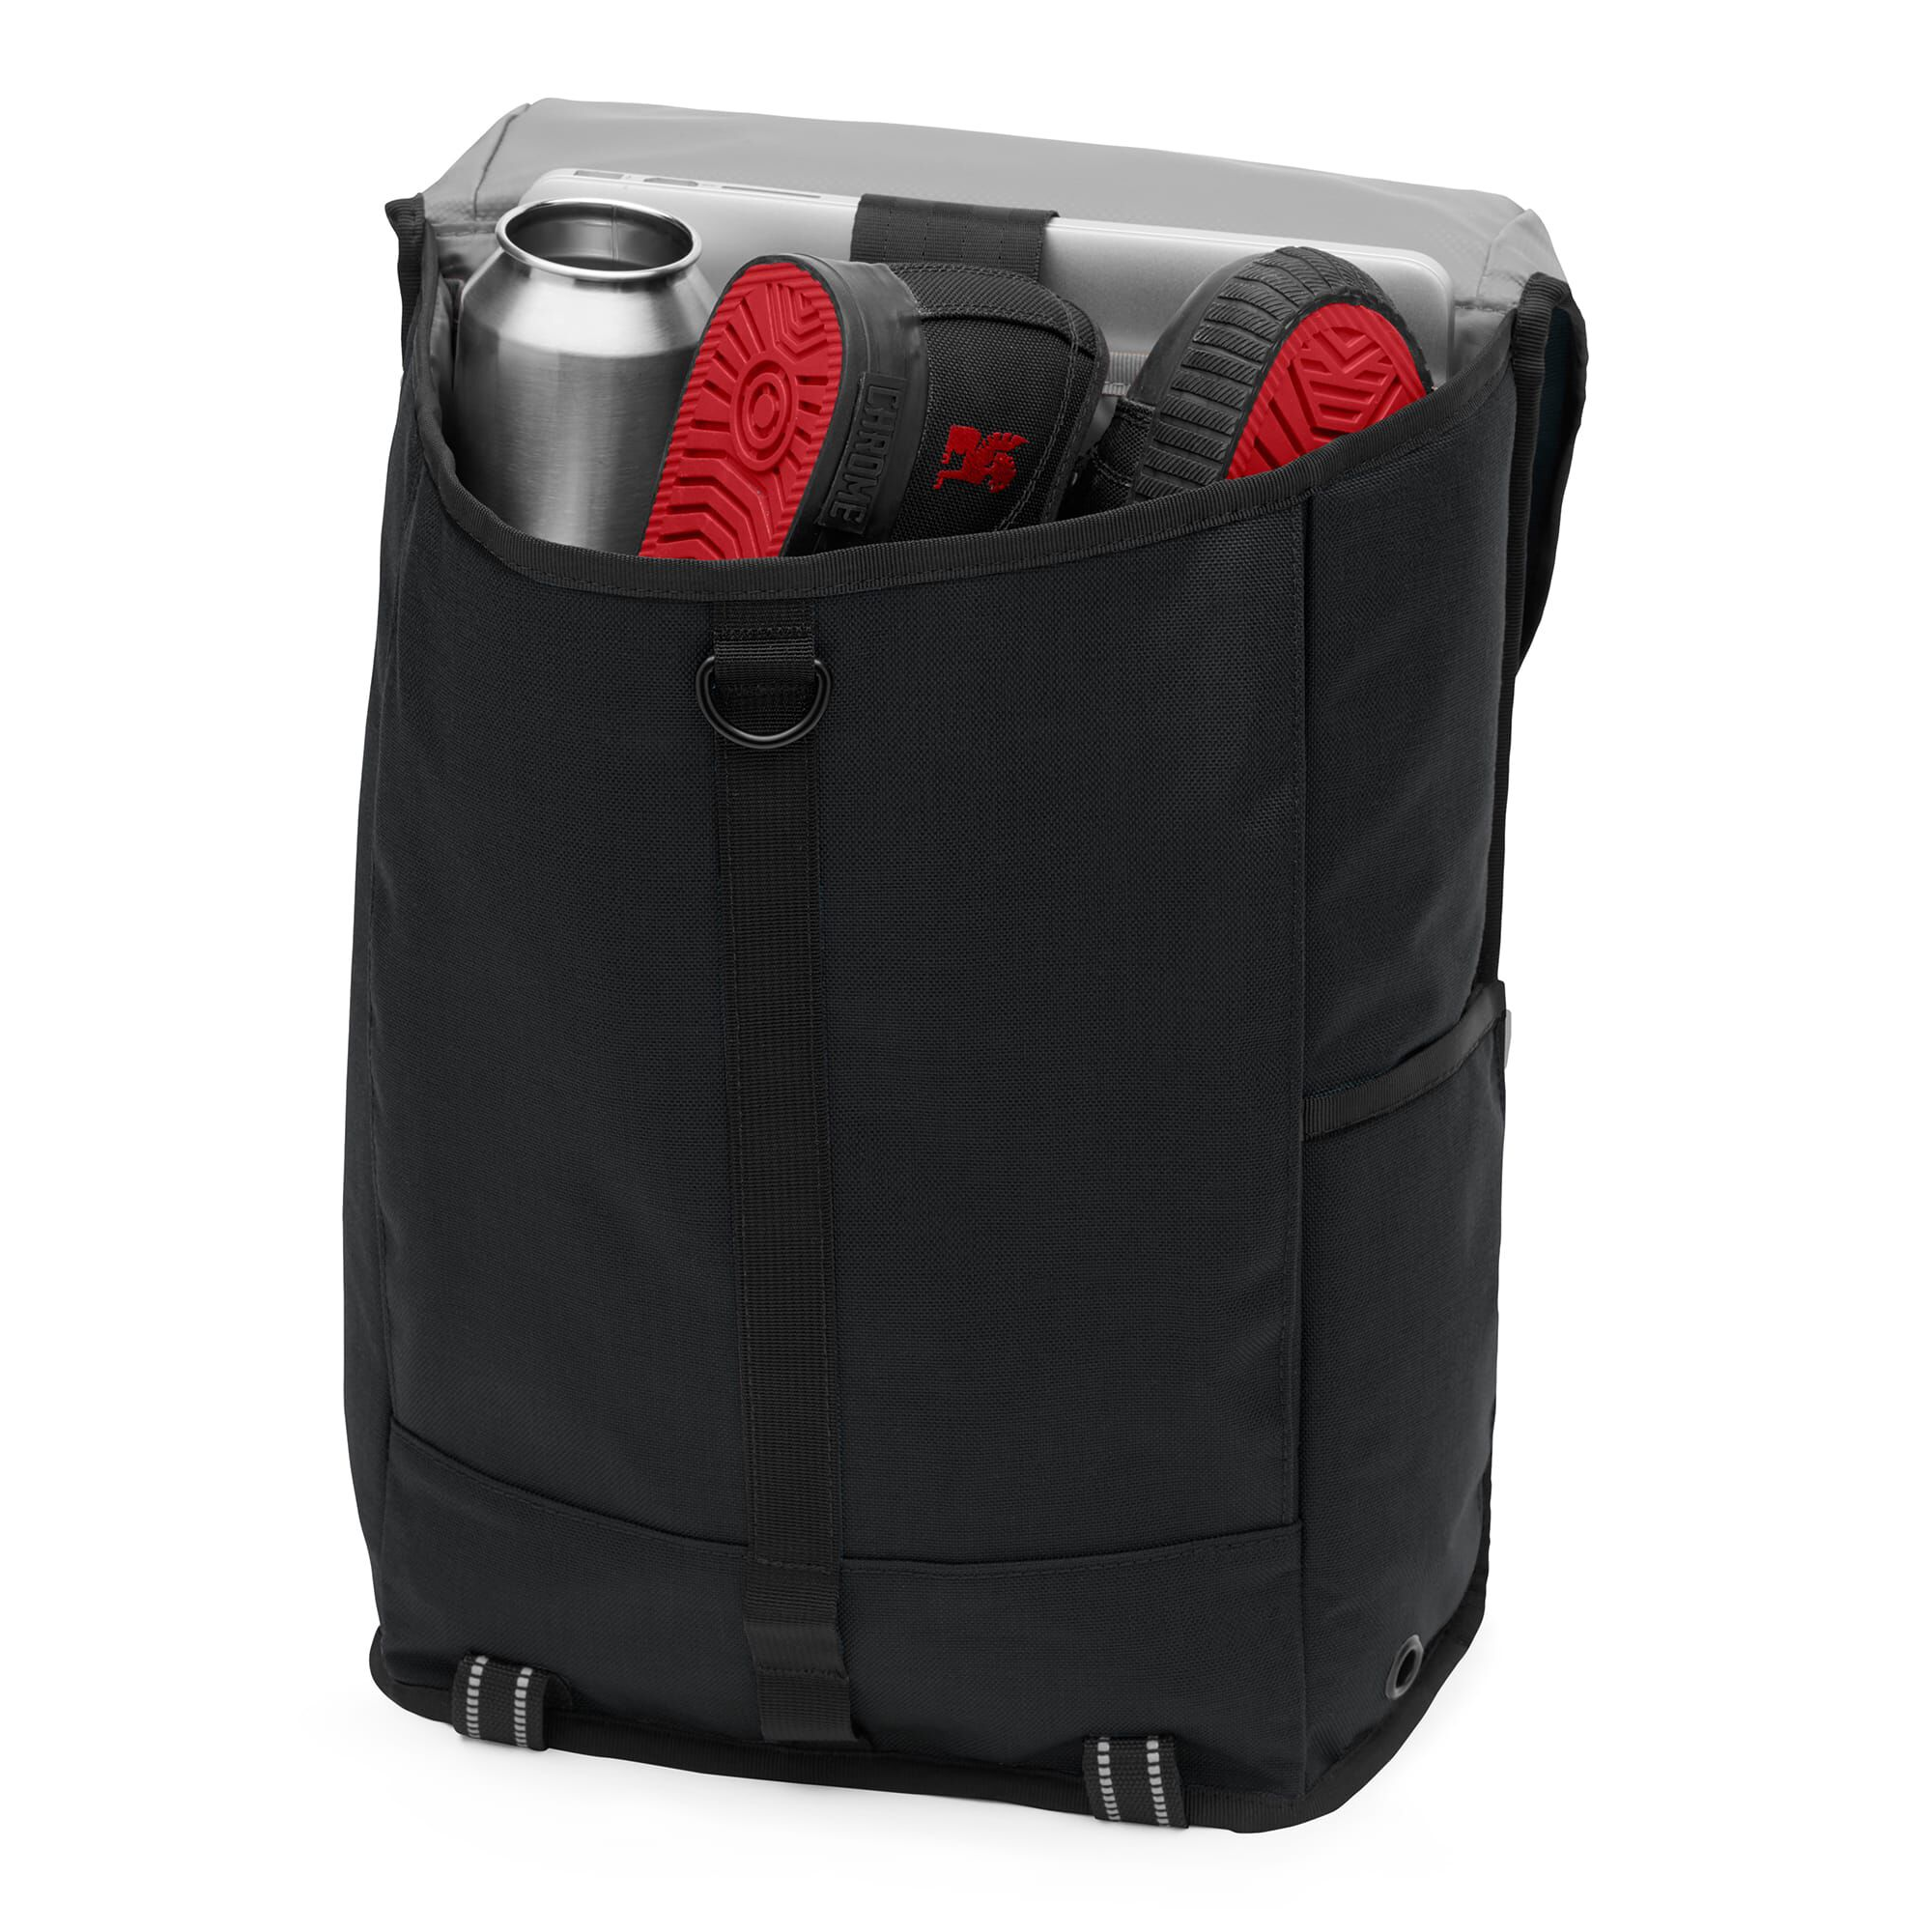 95edc684c90 Soma Backpack - Fits laptops up to 15